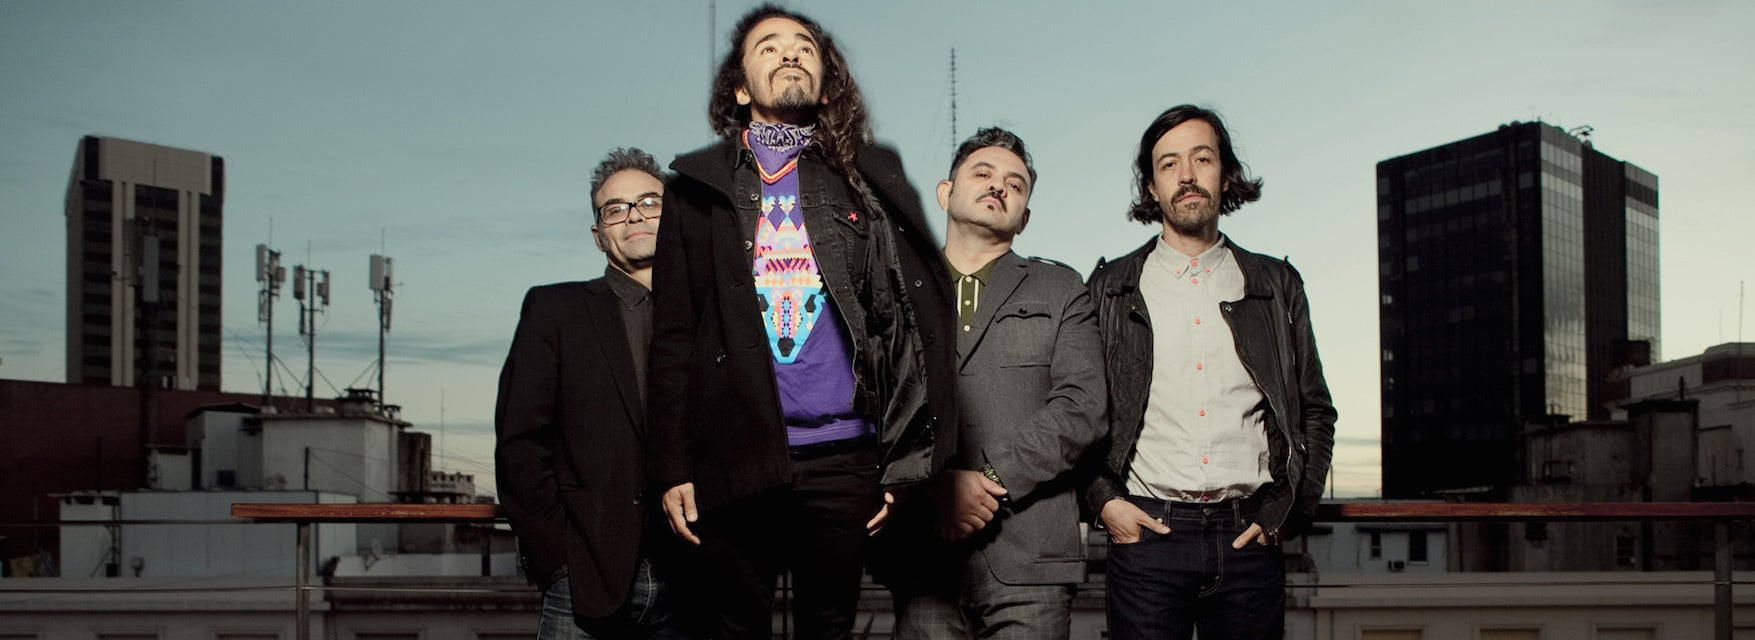 Cafe Tacvba Tickets